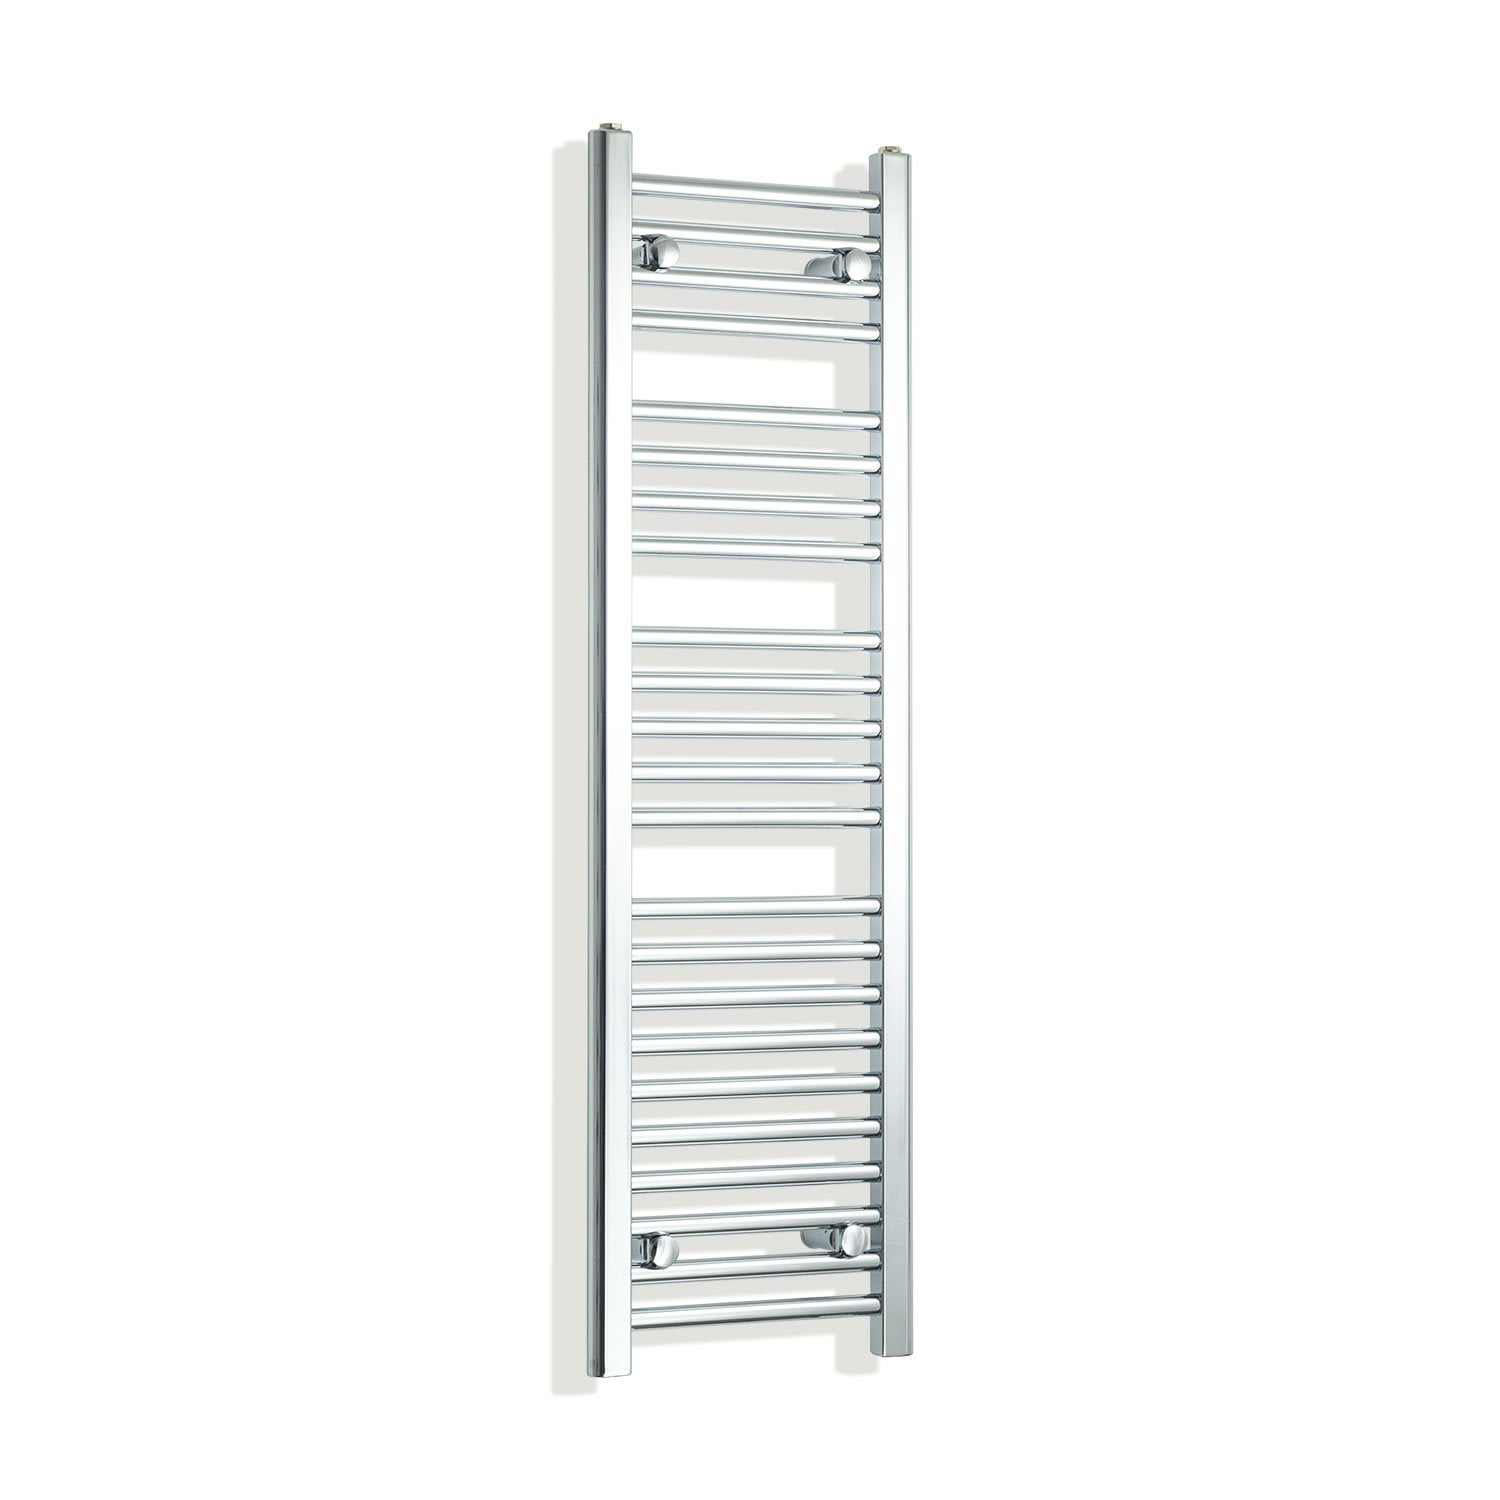 300mm Wide 1200mm High Flat Chrome Heated Towel Rail Radiator,Towel Rail Only